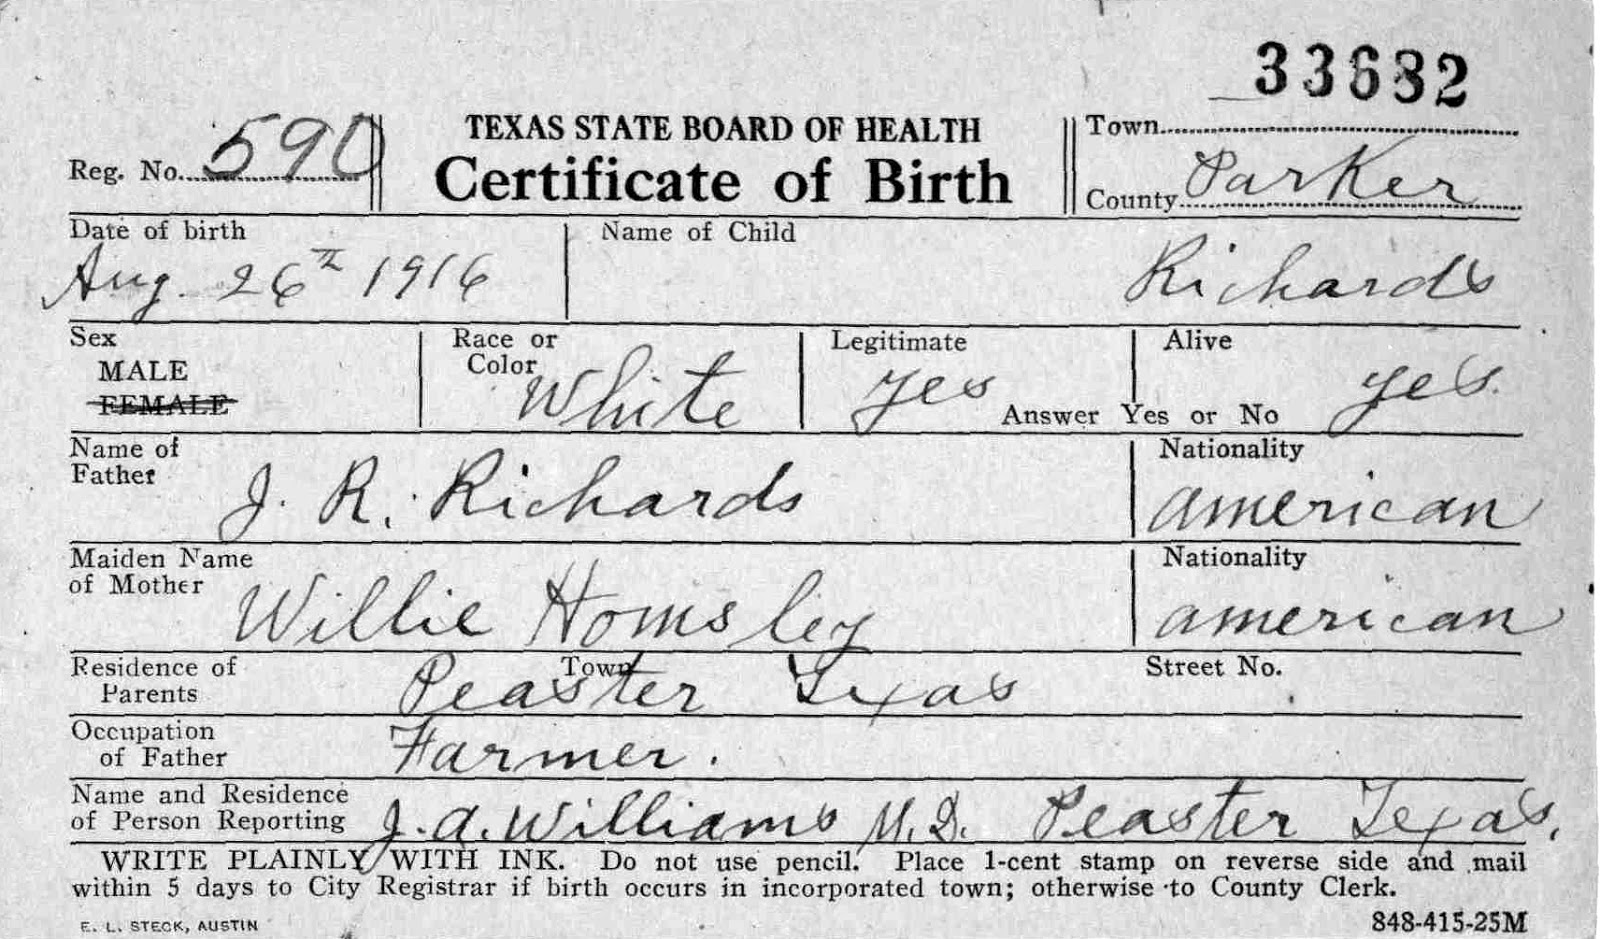 Leons birth and amendment 1916 and 1972 genealogy traces 1916 was my fathers birthday and that his parents were john robert richards and willie laura homsley and that he was born in peaster texas xflitez Image collections